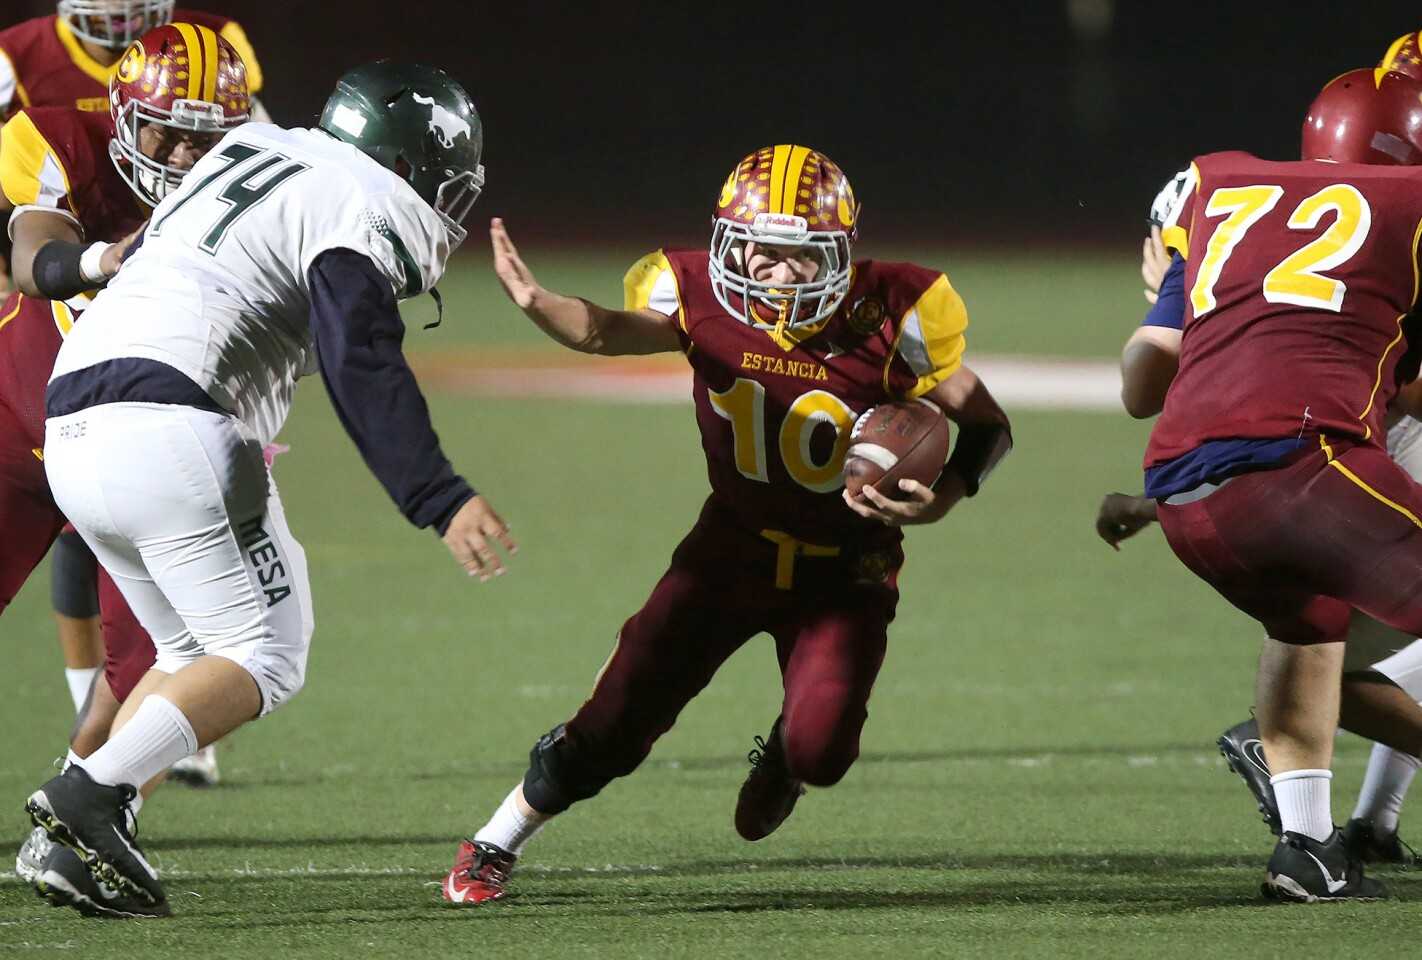 Photo Gallery: Estancia vs. Costa Mesa in football